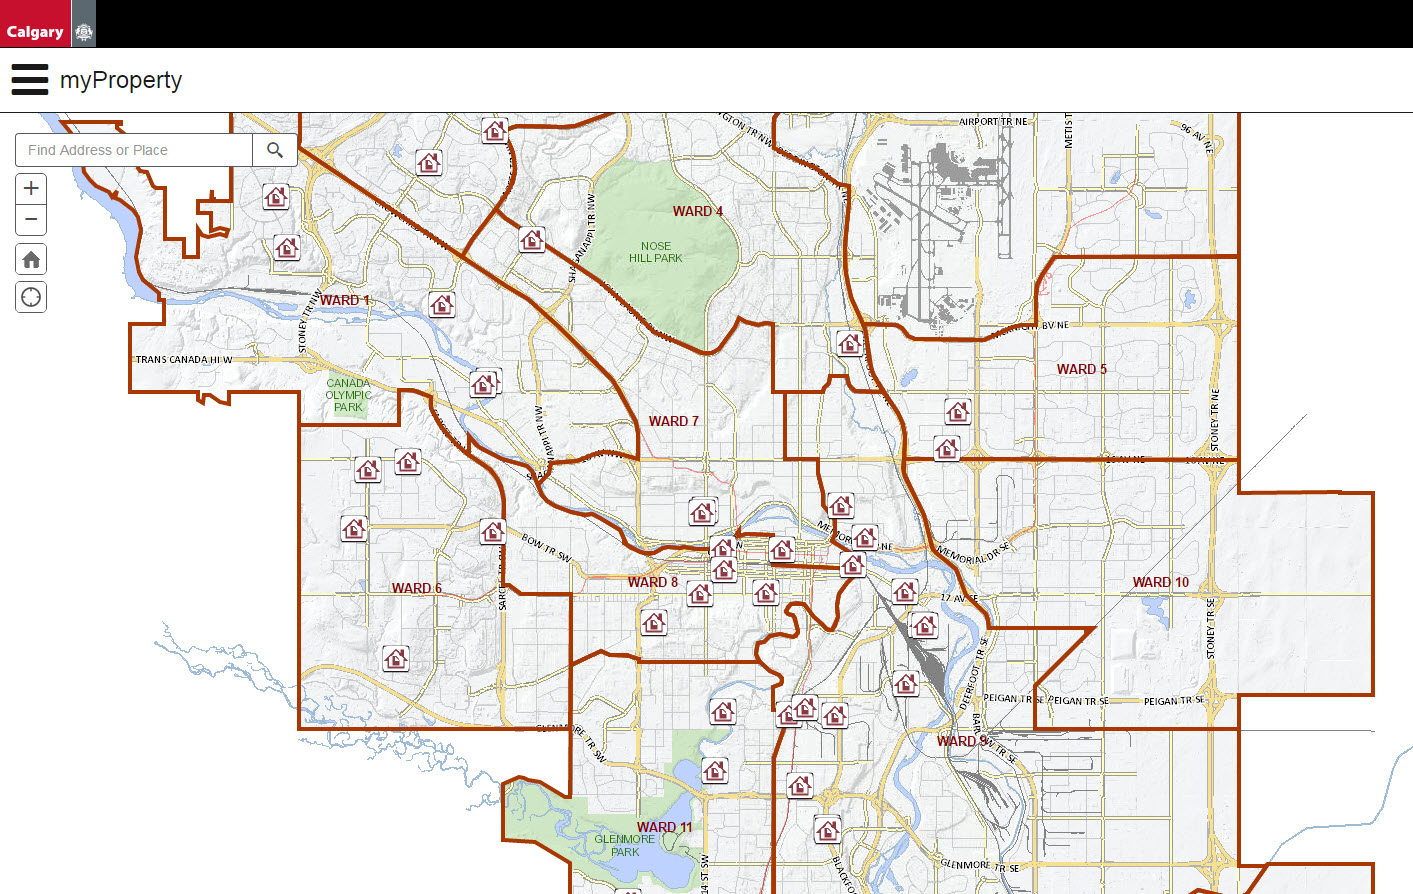 Calgary City News Blog MyProperty map relaunches today